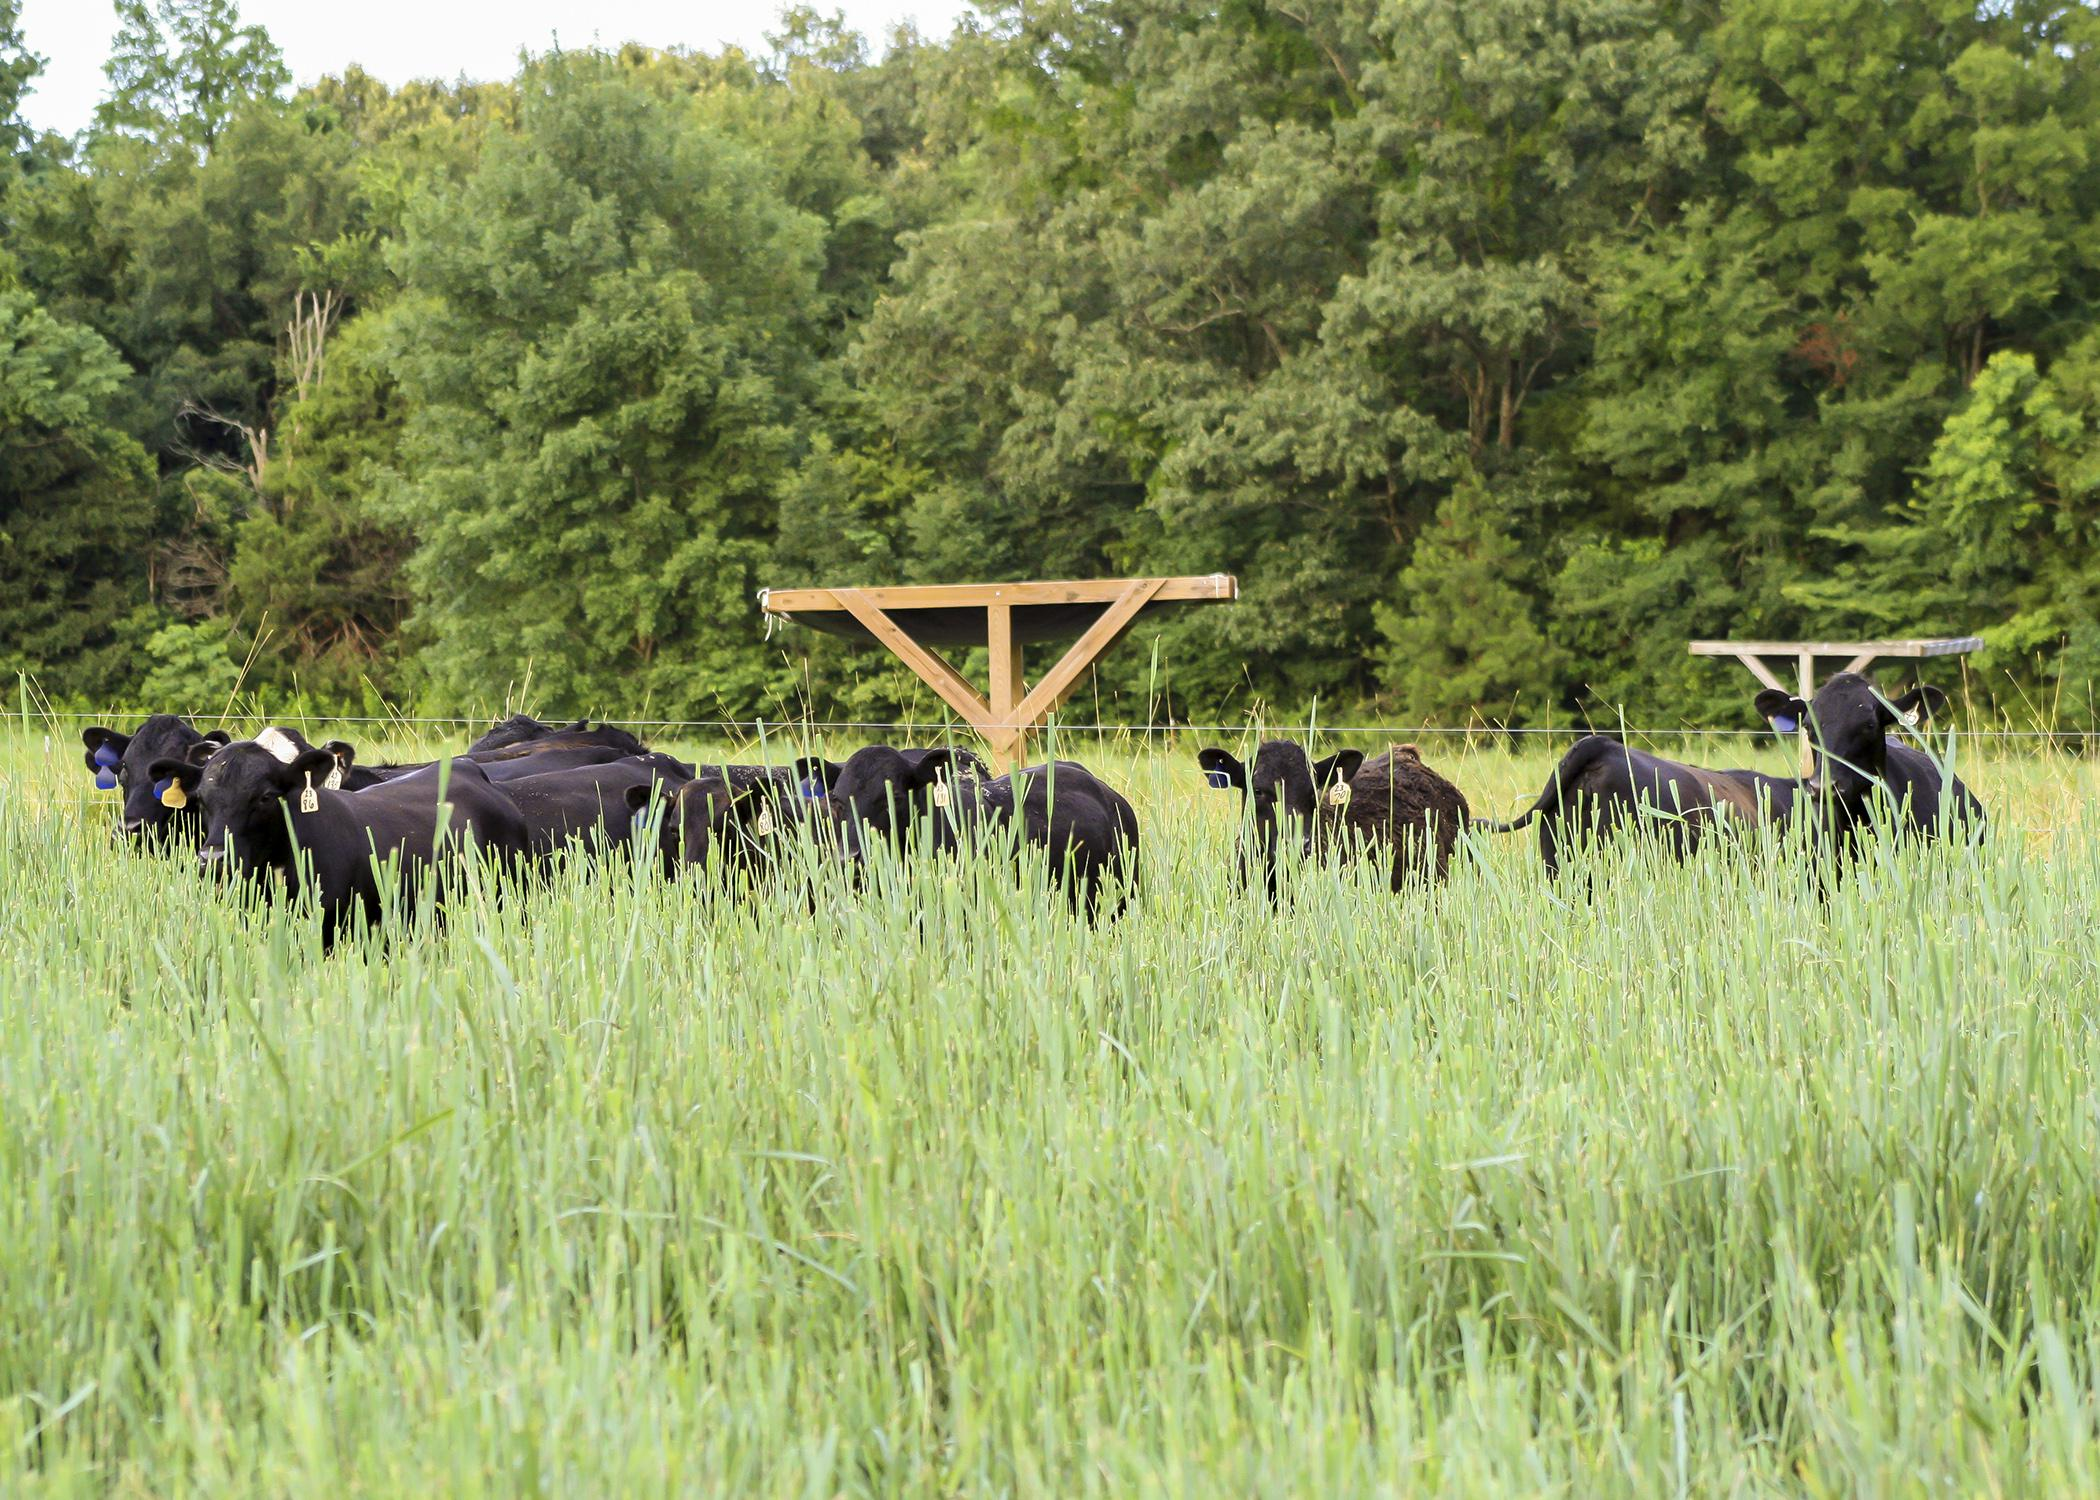 A Mississippi Agricultural and Forestry Experiment Station study of beef from cattle that forage on warm-season, native grasses indicates a positive reception by consumers. These grasses are beneficial to wildlife, especially ground-nesting birds. (Submitted photo)